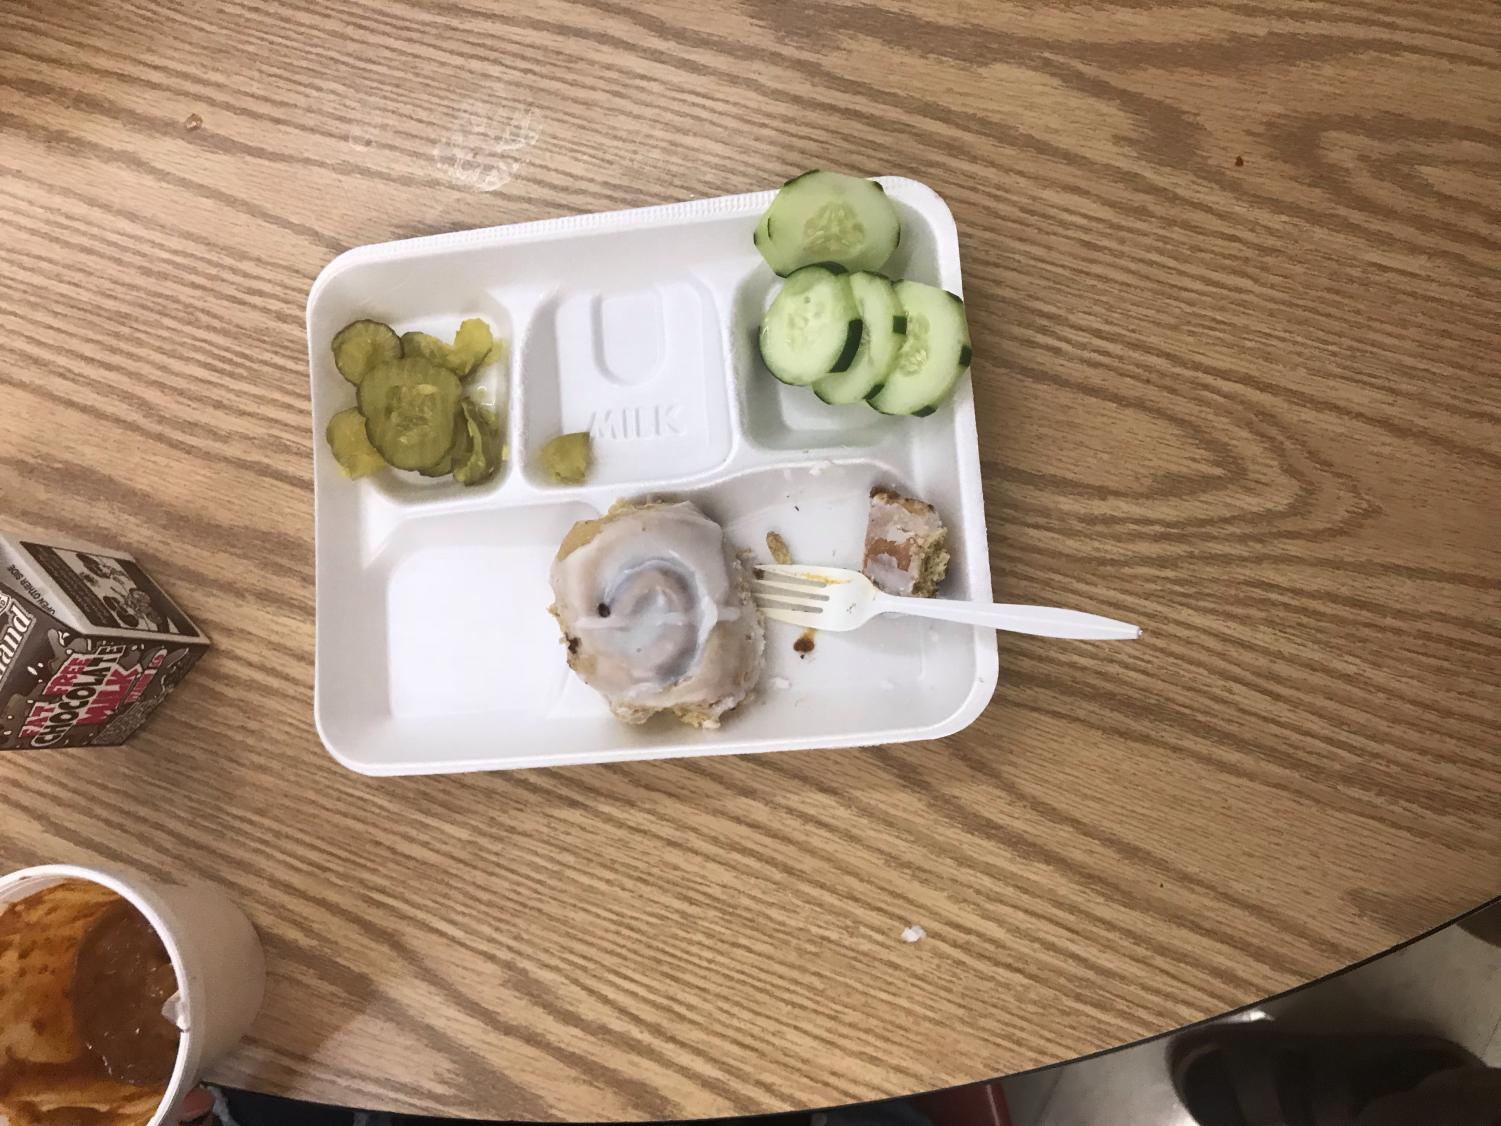 cinnamon+roll+and+pickles+with+cucumbers++